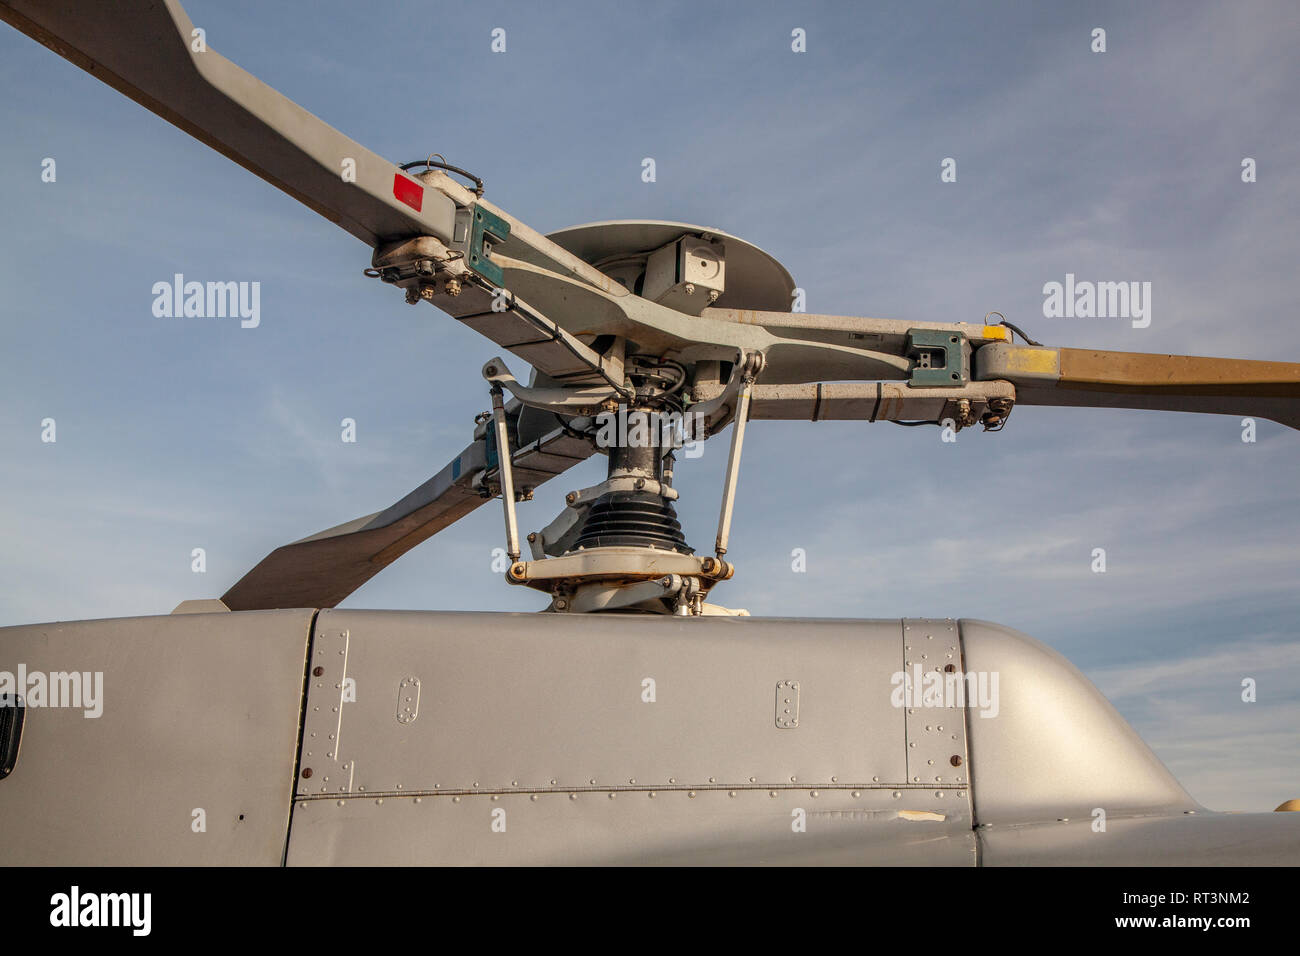 Helicopter rotor blades - Stock Image